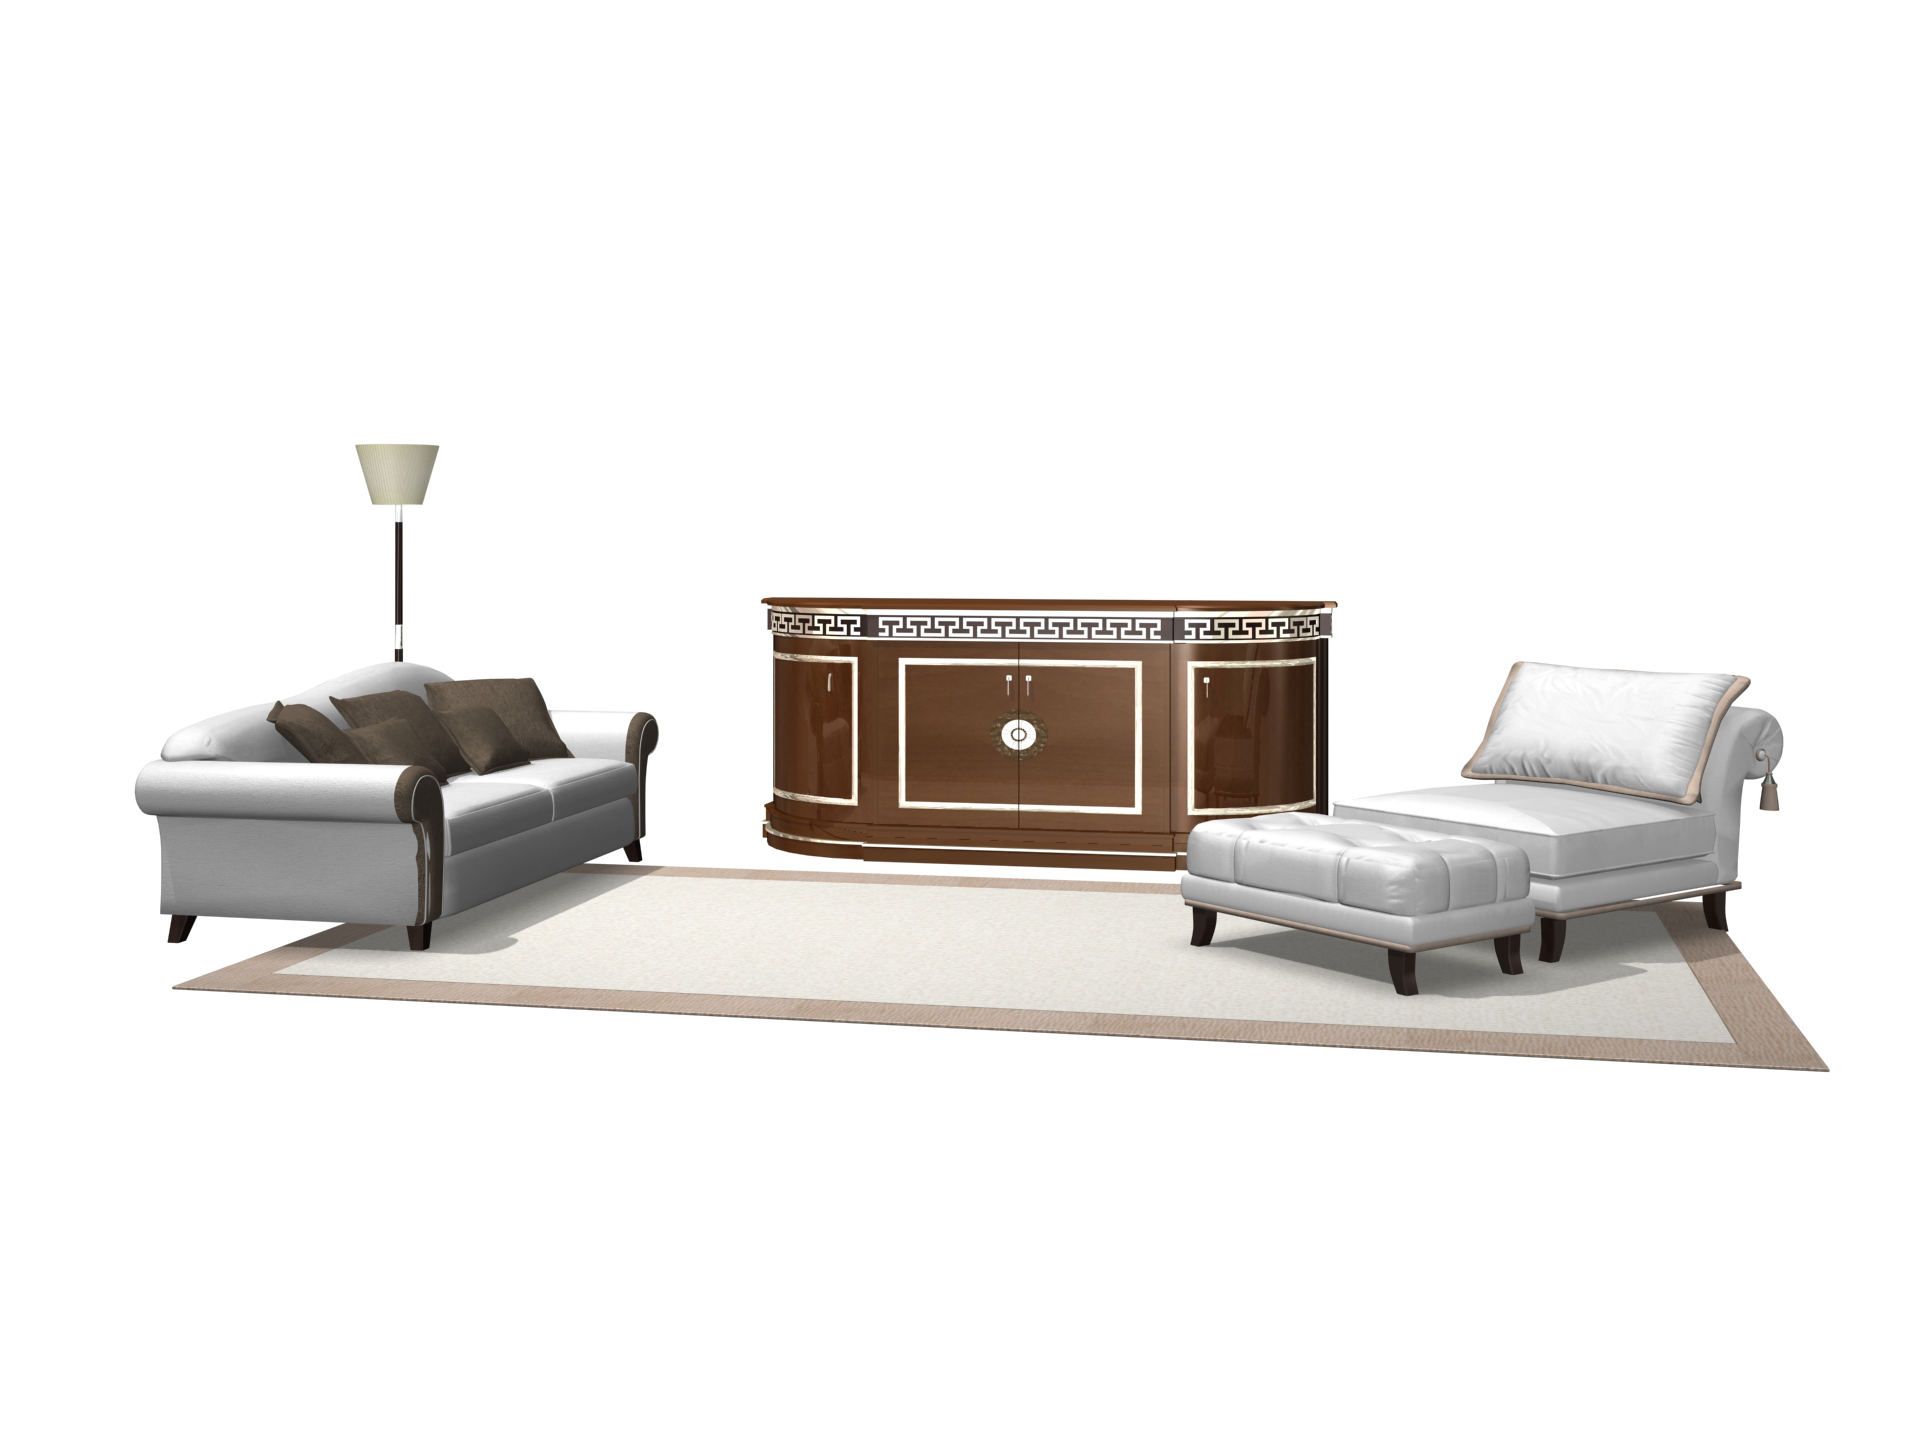 Muebles sas 003 3d model download free 3d models download for Muebles 3d gratis